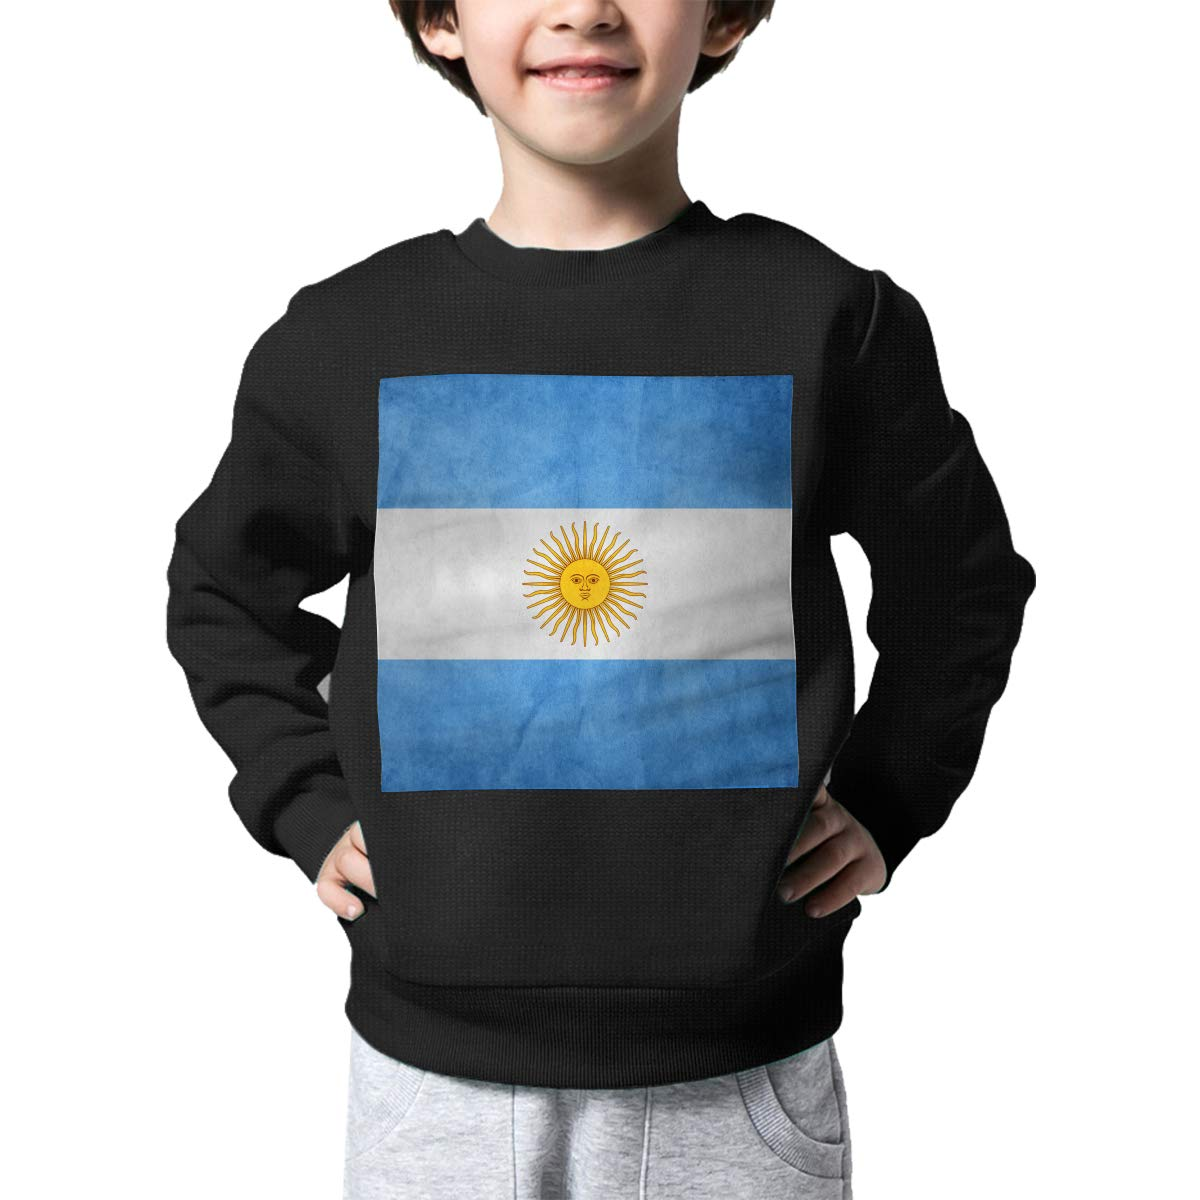 Boys Girls Vintage Argentina Flag Lovely Sweaters Soft Warm Unisex Children Kids Sweater